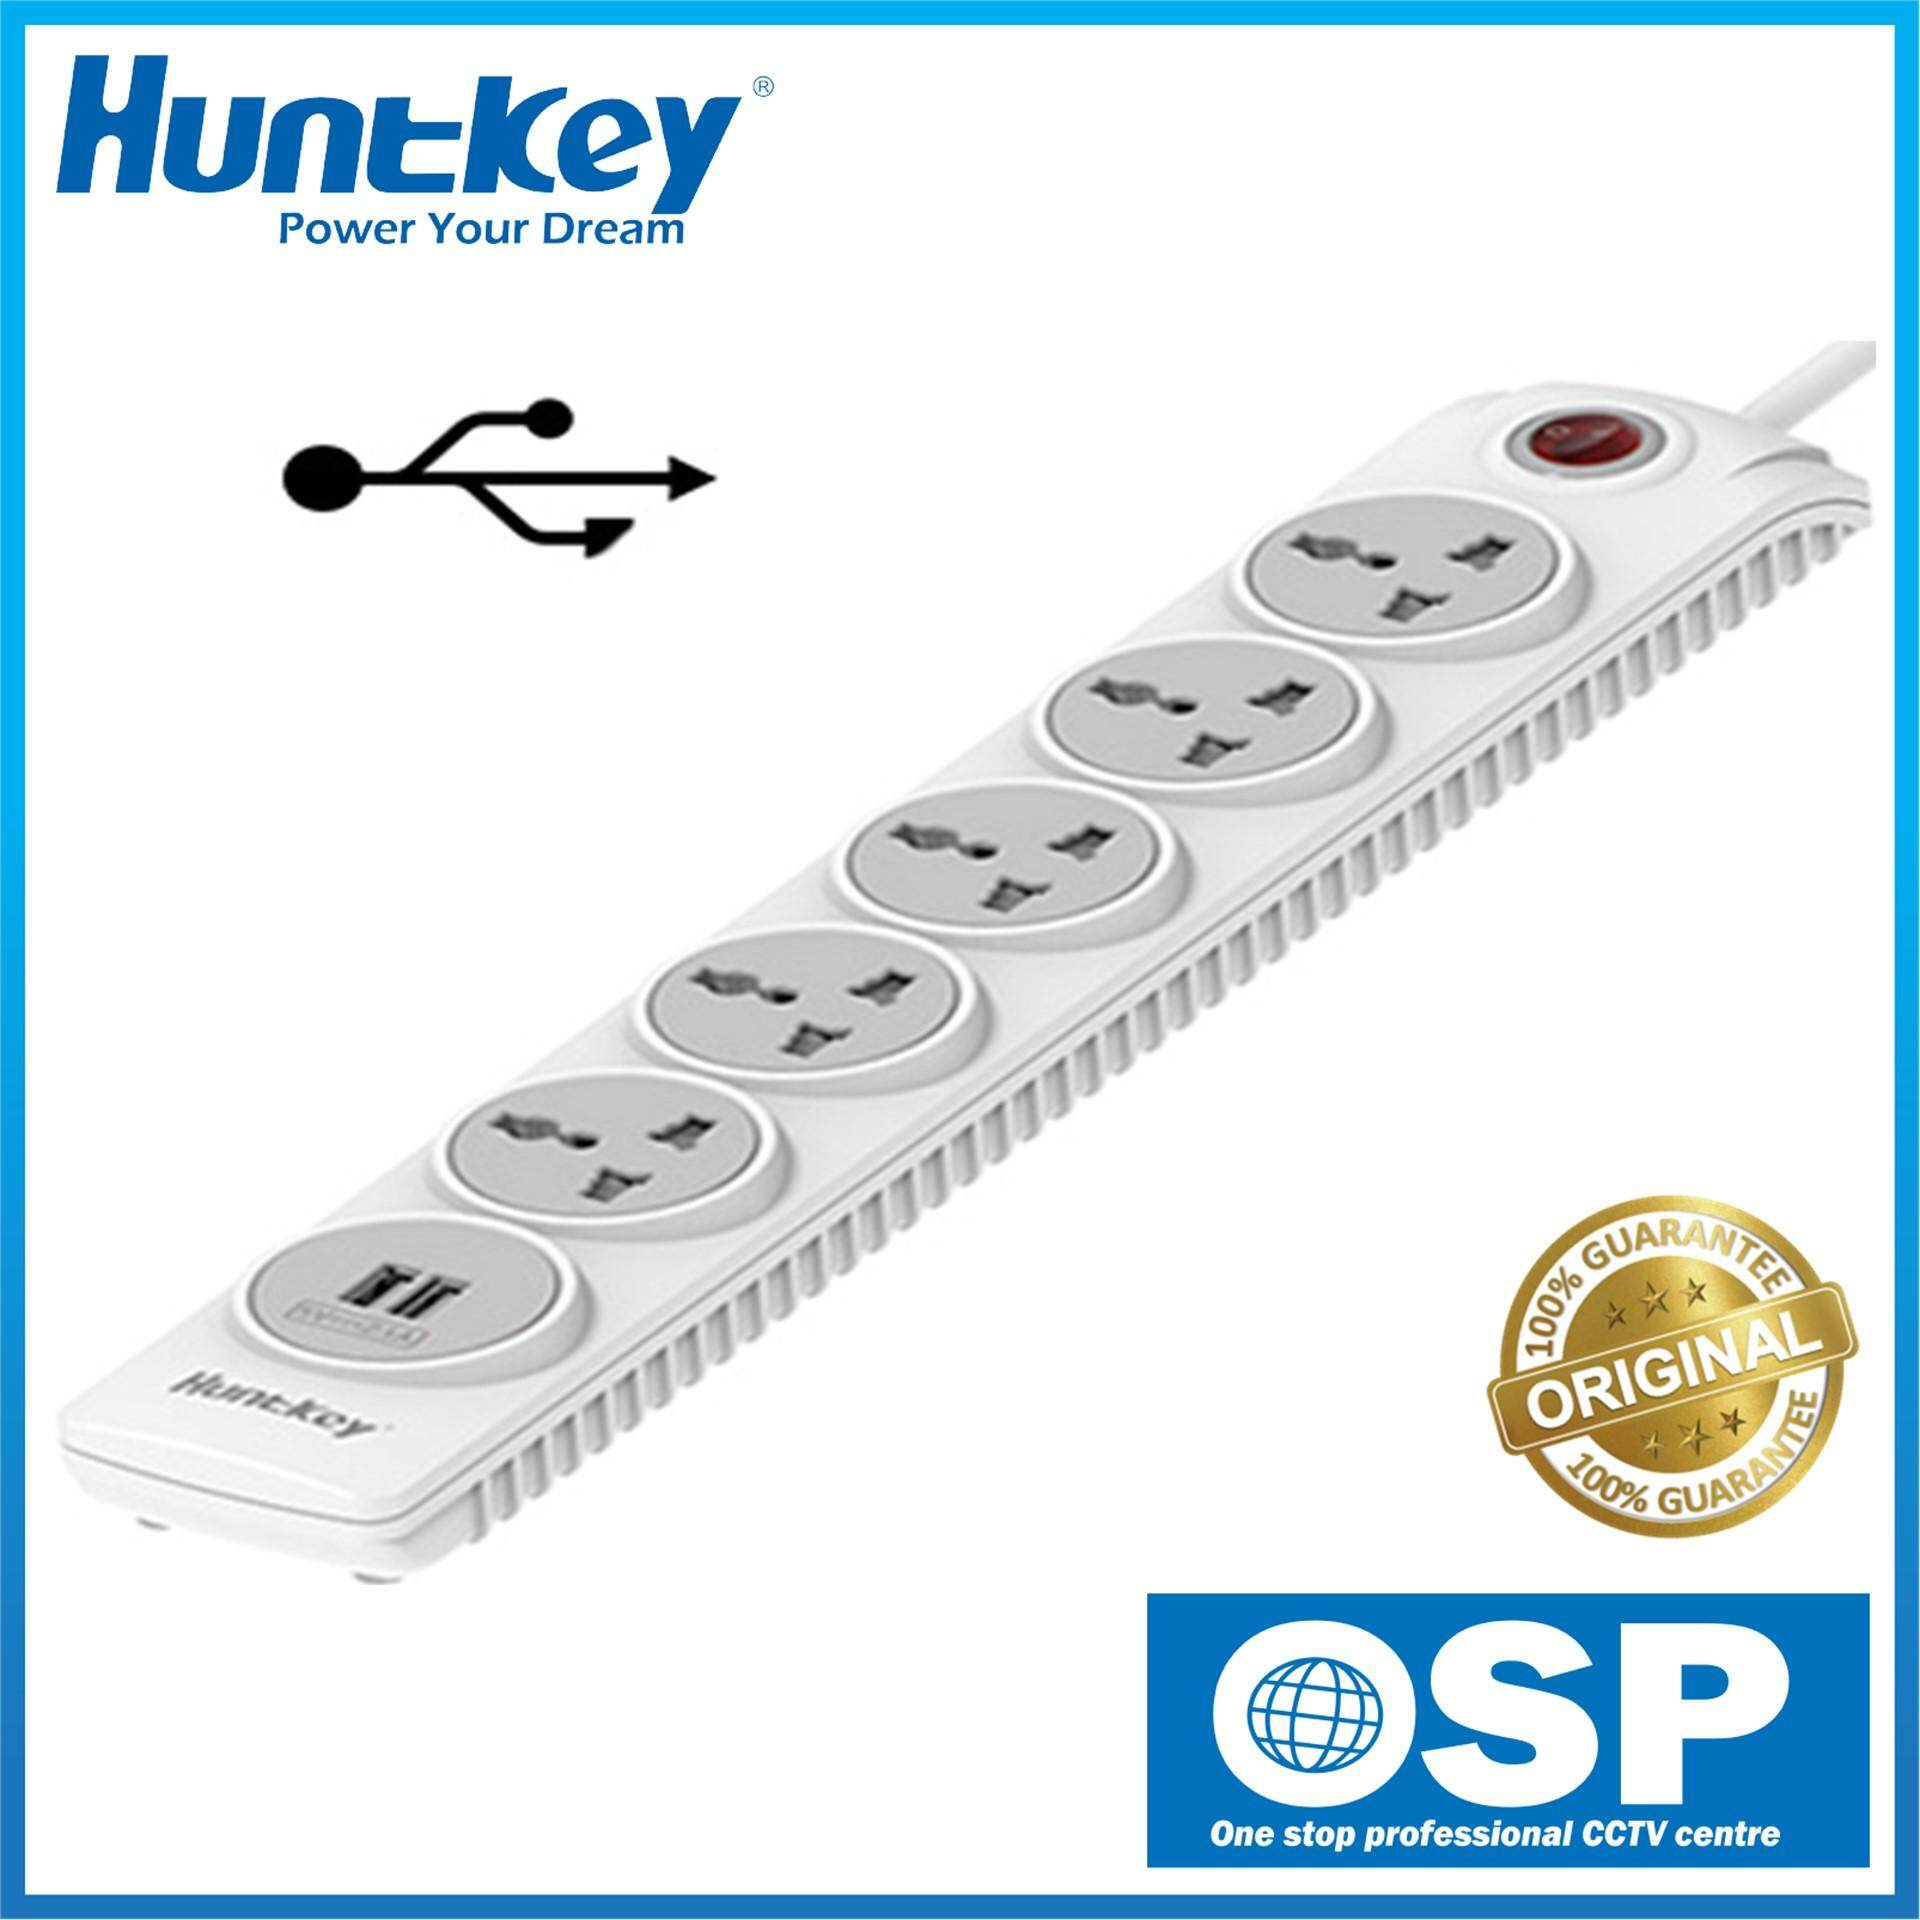 HuntKey SZN607 Power Strip 5 Sockets Surge Protector with 2 USB Port Charger 3METERS